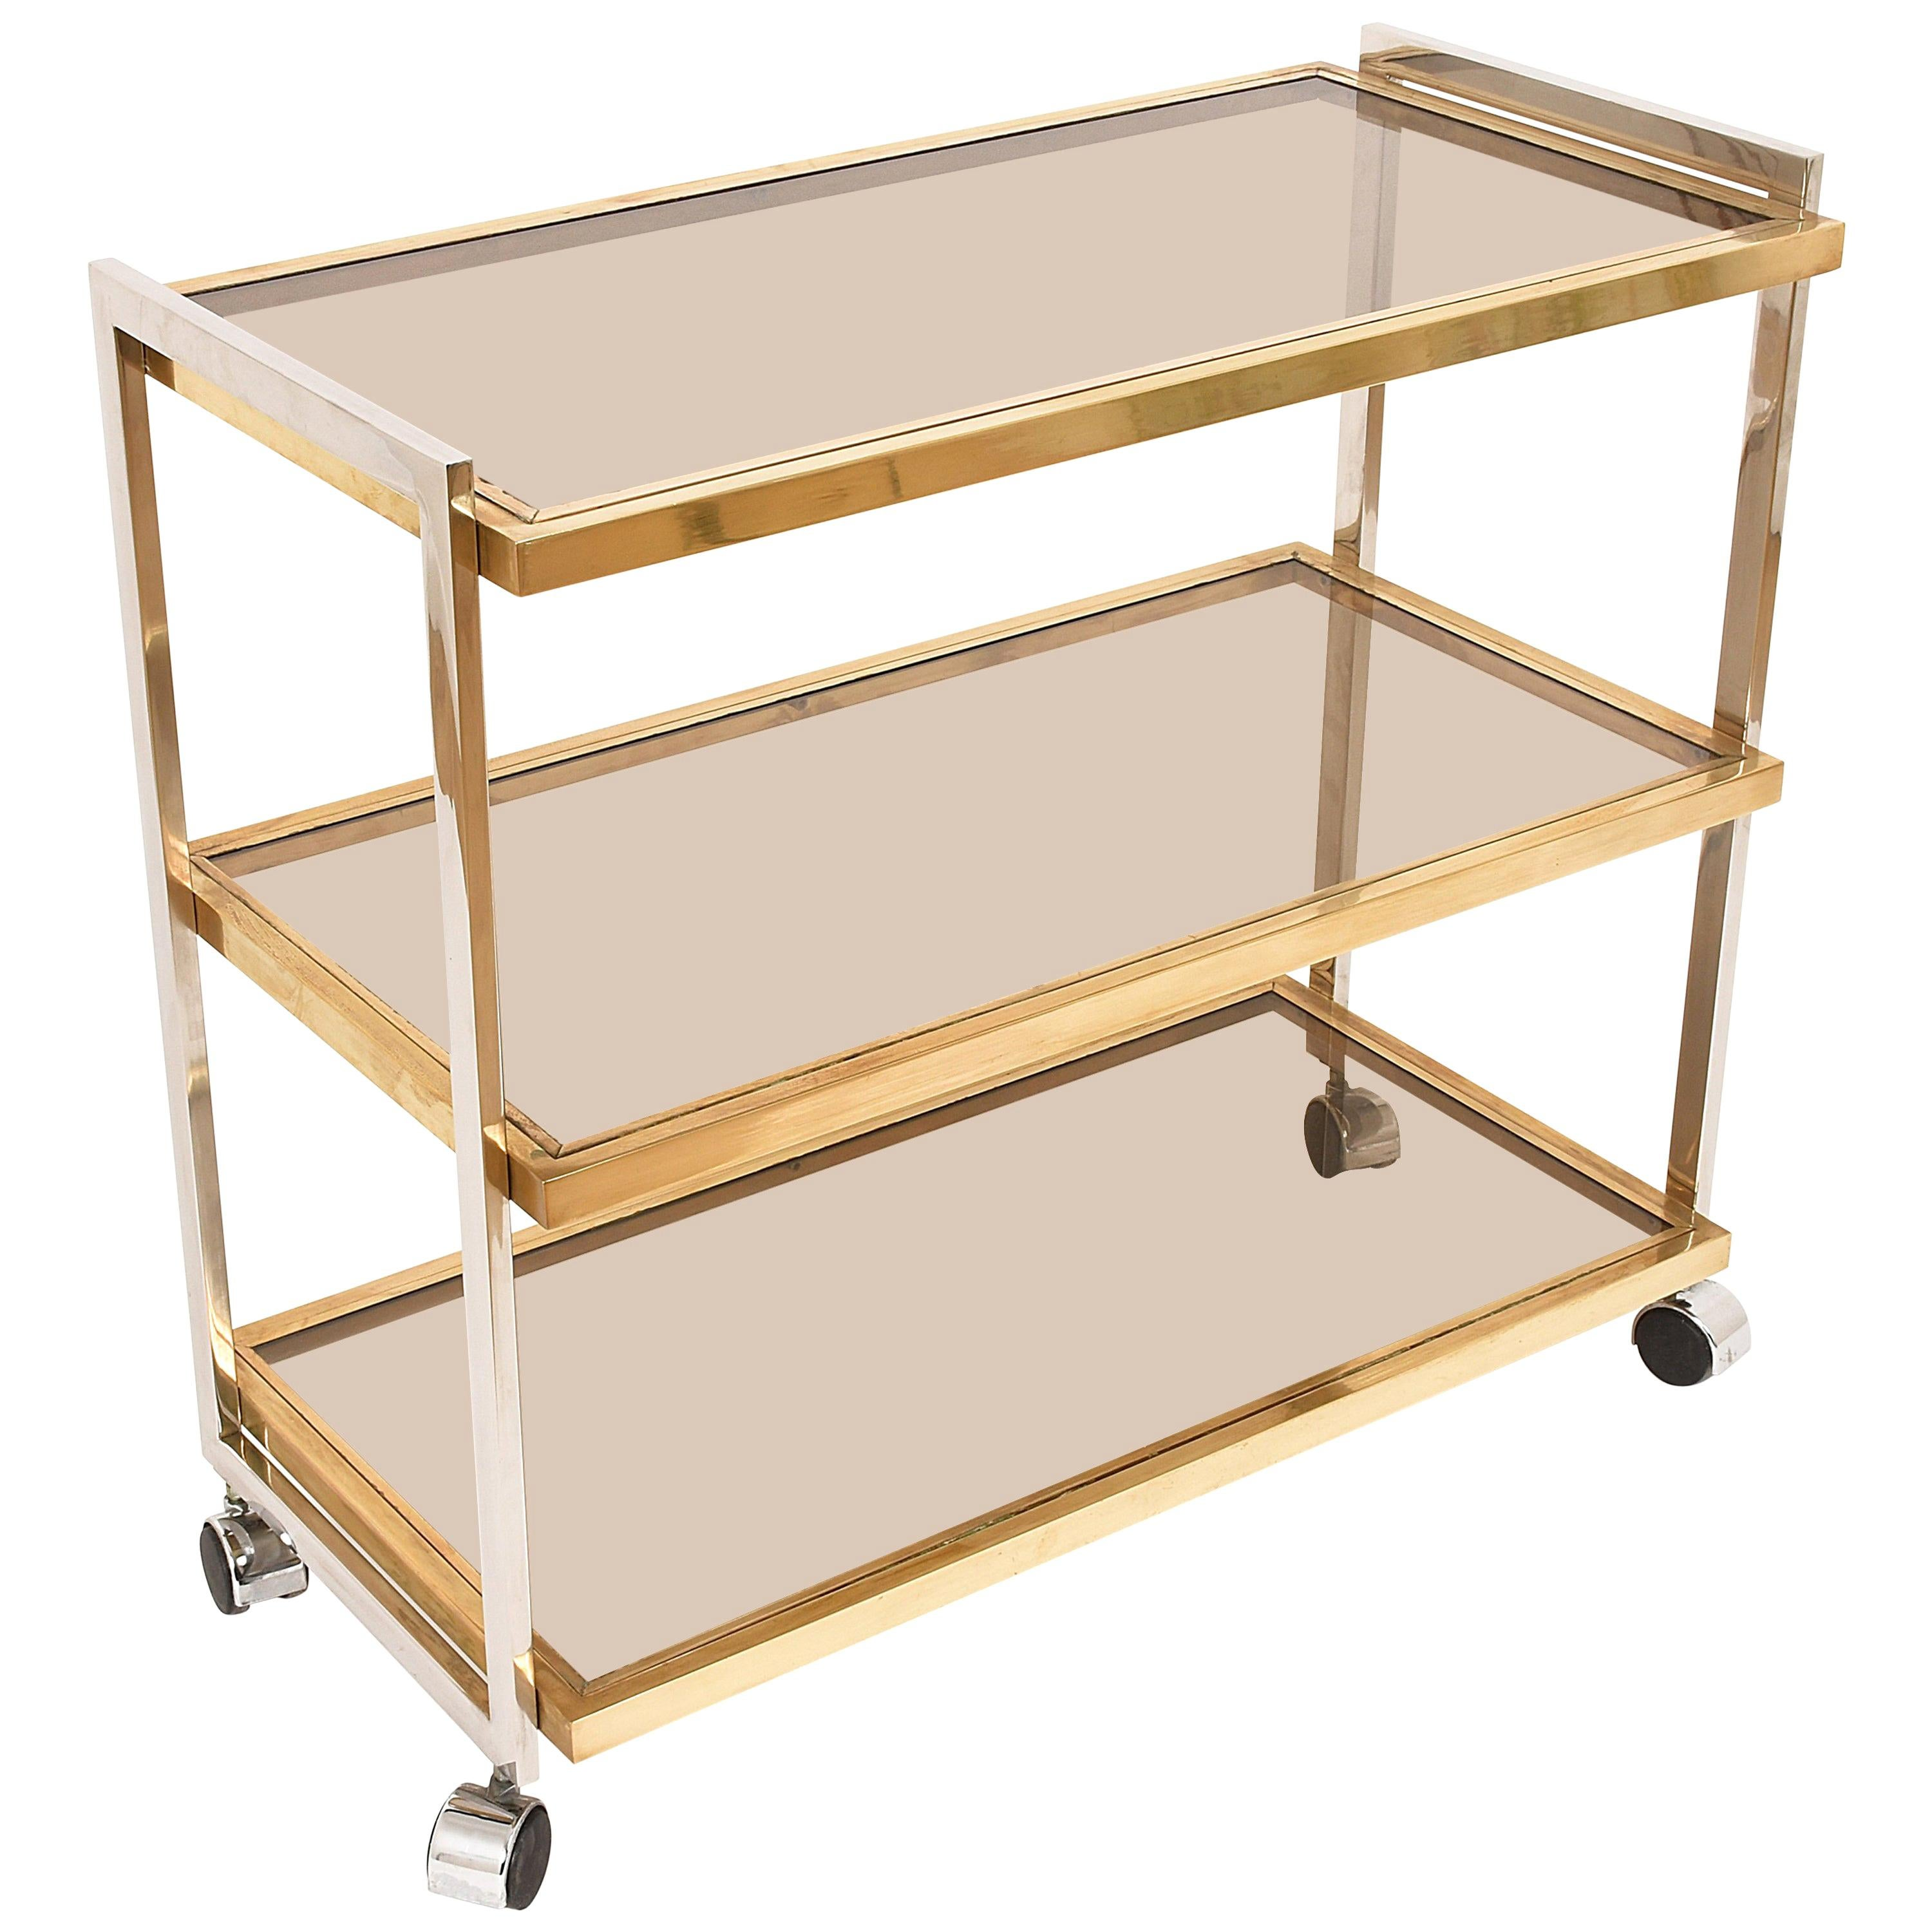 Elegant Bar Cart In Brass And Chrome Three Glass Shelves Rega Style Italy For Sale At 1stdibs